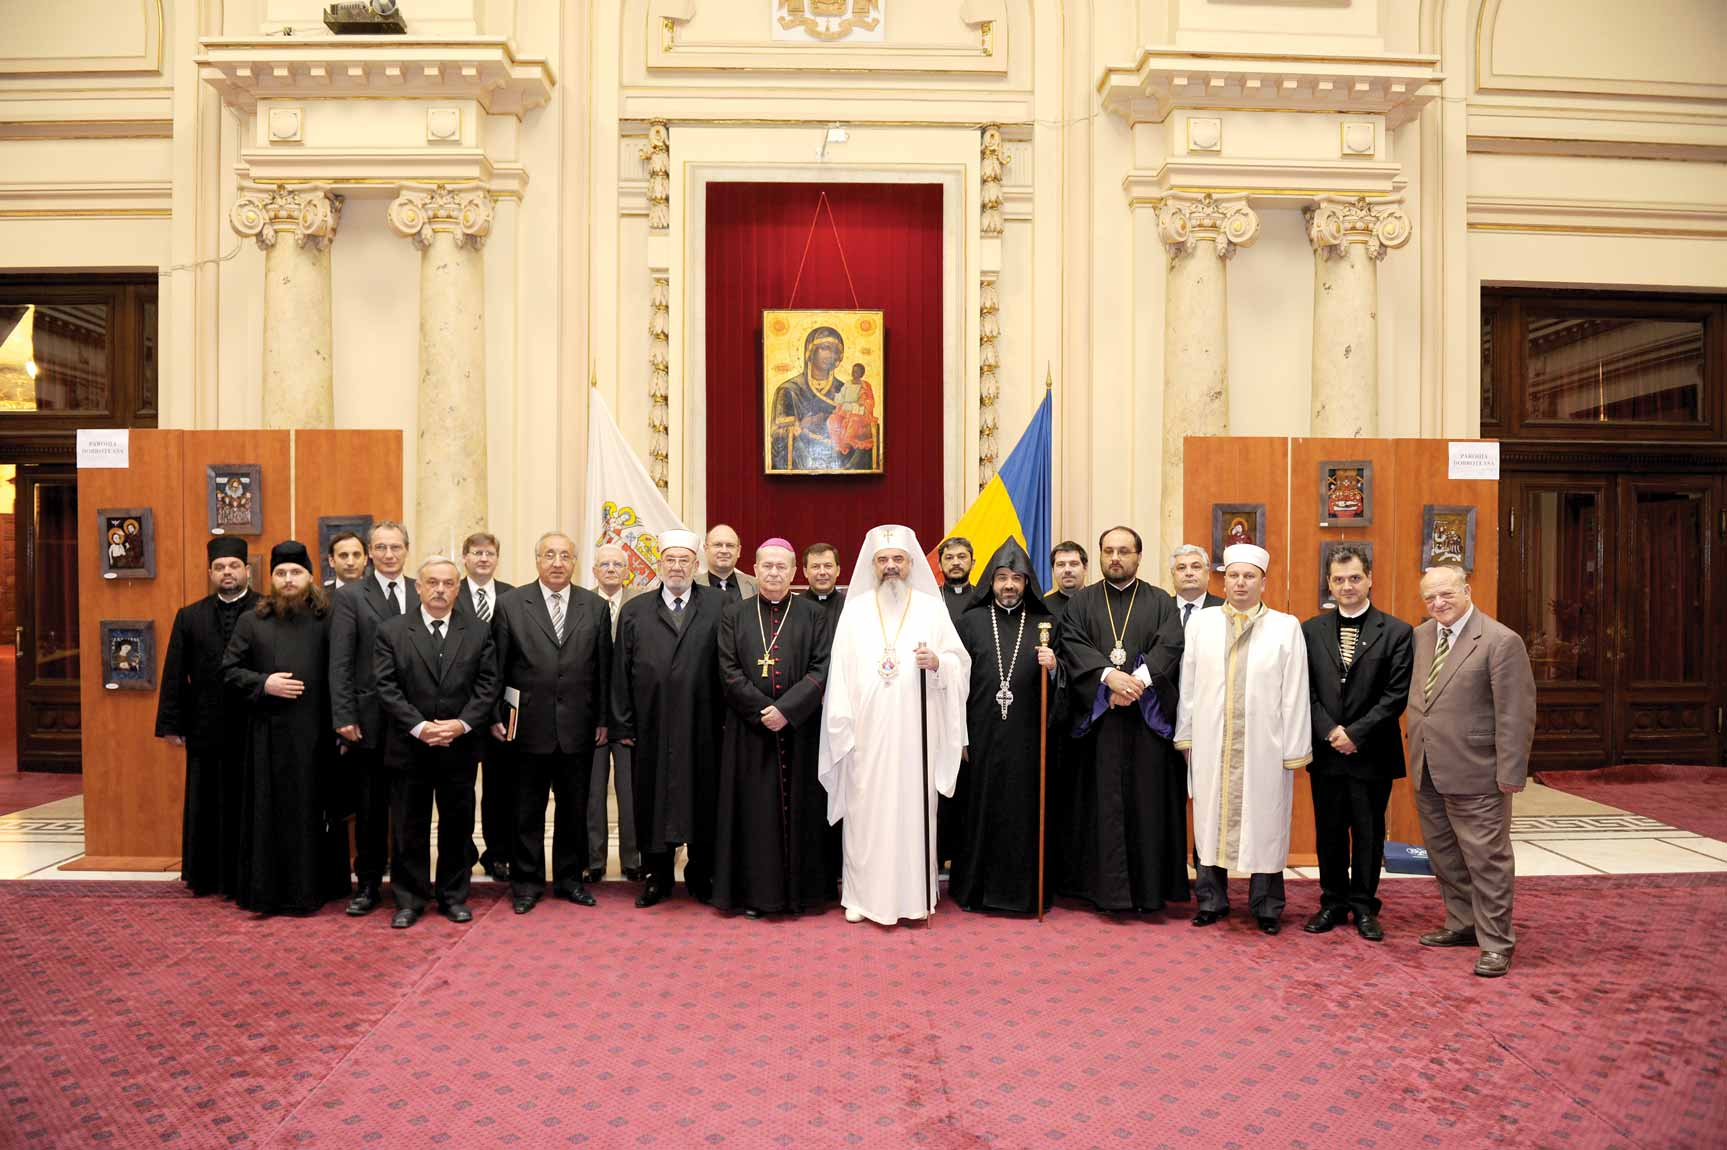 Consiliul Consultativ al Cultelor din România / Consultative Council of the Religions in Romania